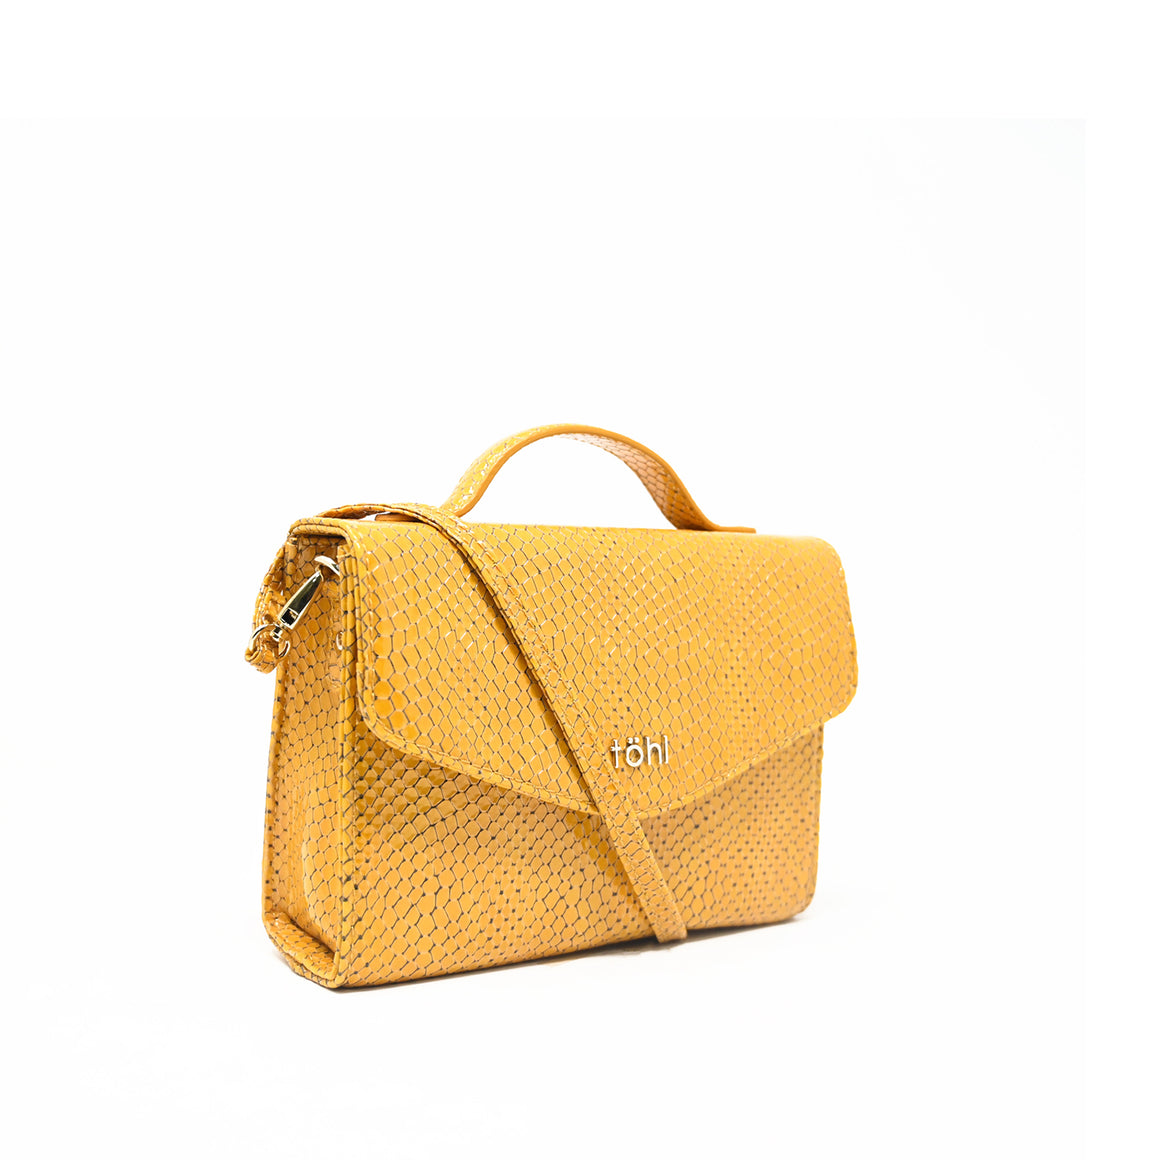 SG0035 - TOHL IRETON WOMEN'S CROSS-BODY BAG - MUSTARD